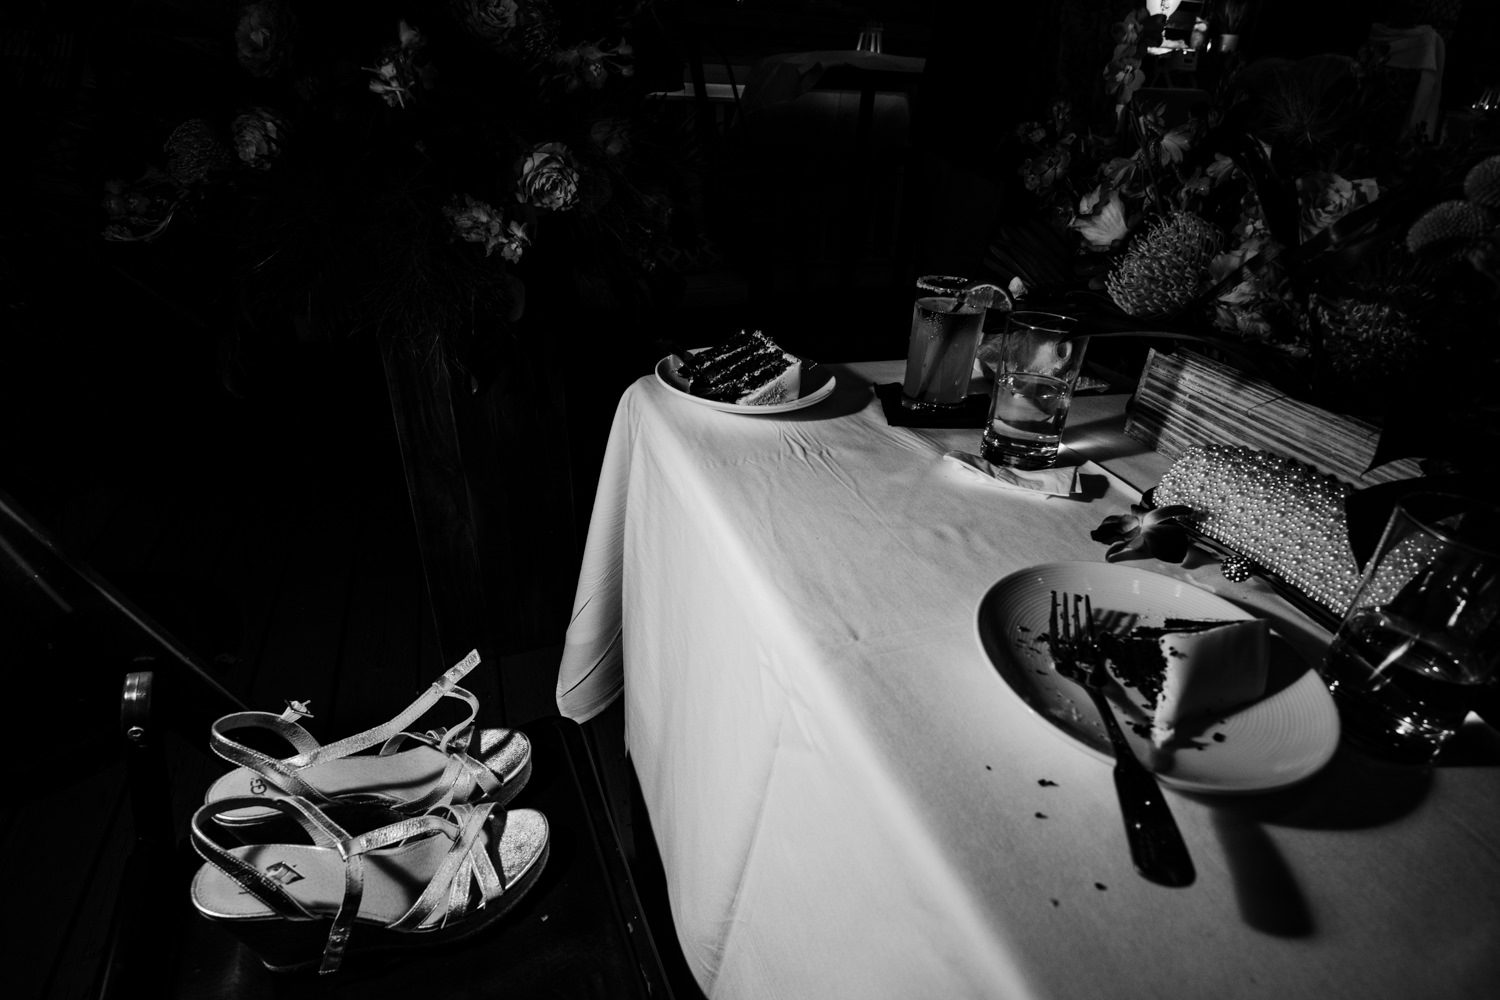 Wedding reception buffet table at bagatelle in key west